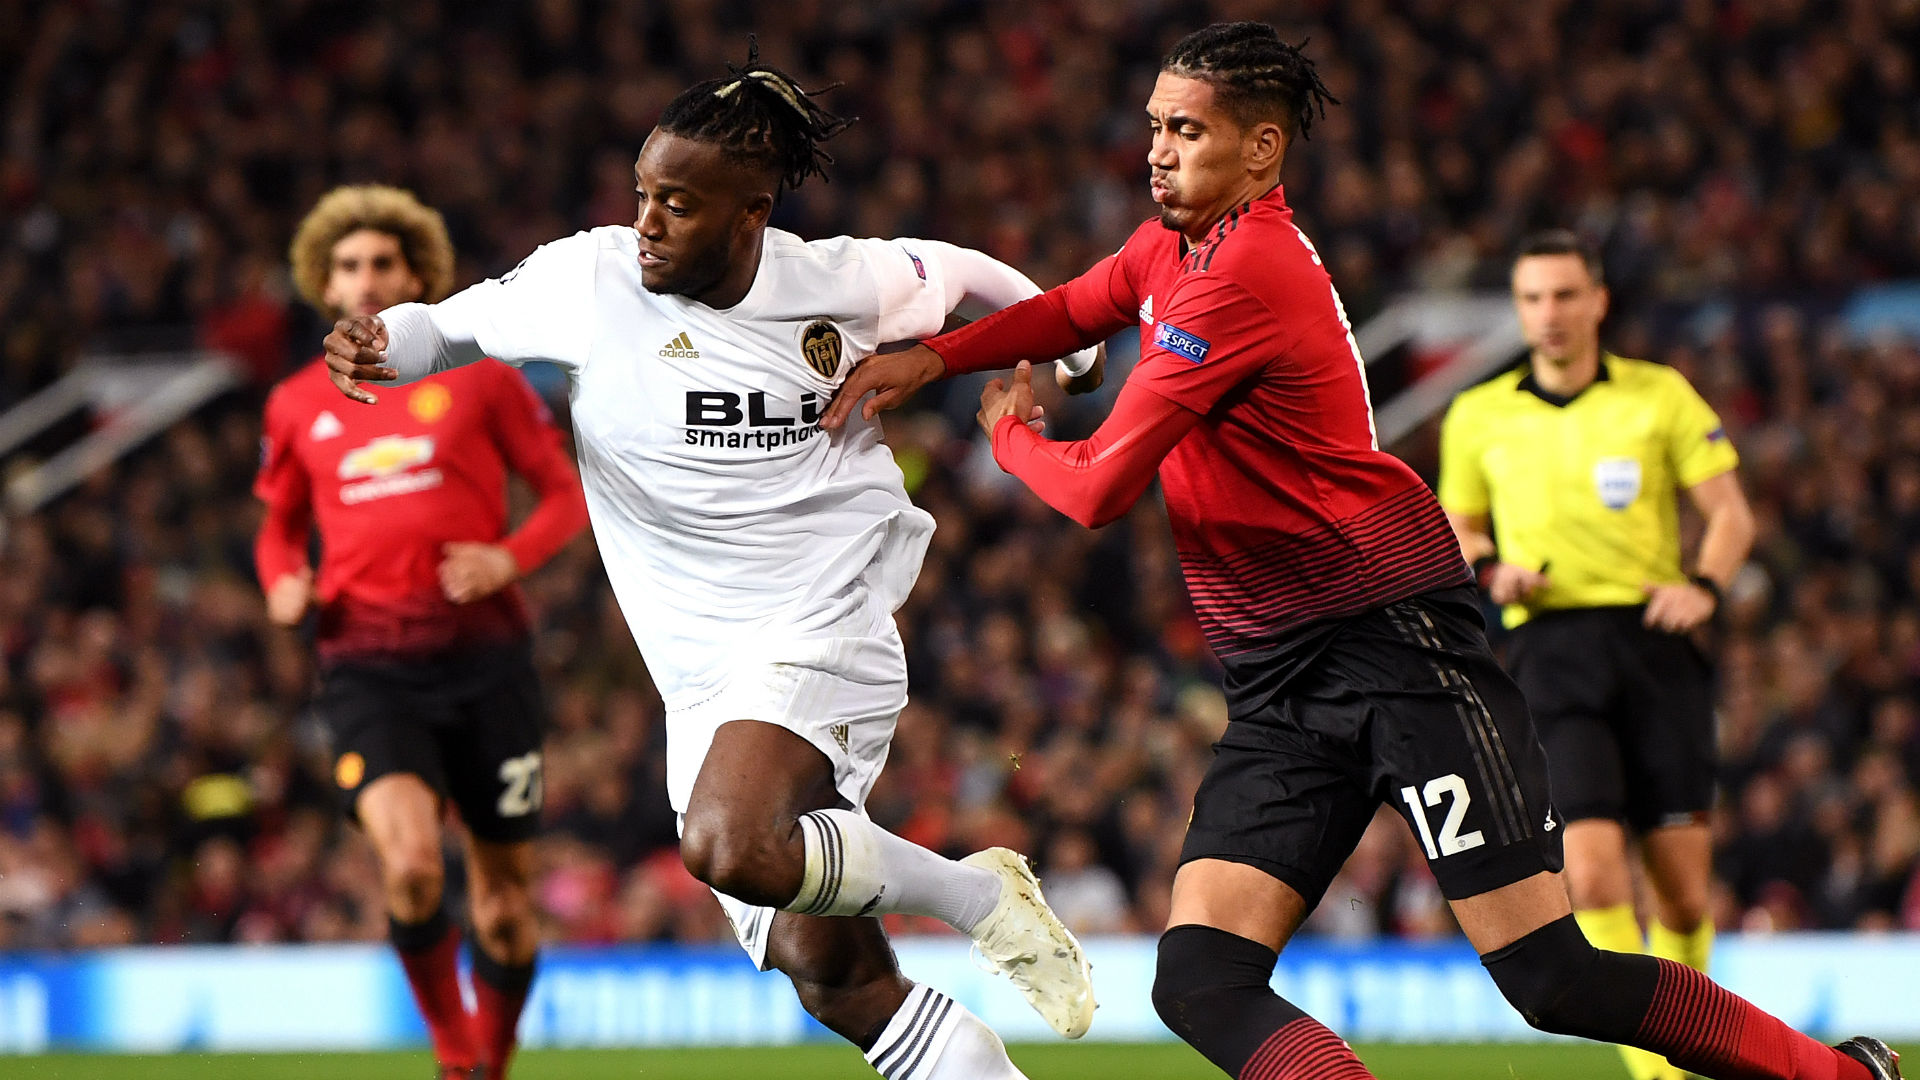 Michy Batshuayi Chris Smalling Manchester United Valencia UEFA Champions League 02102018